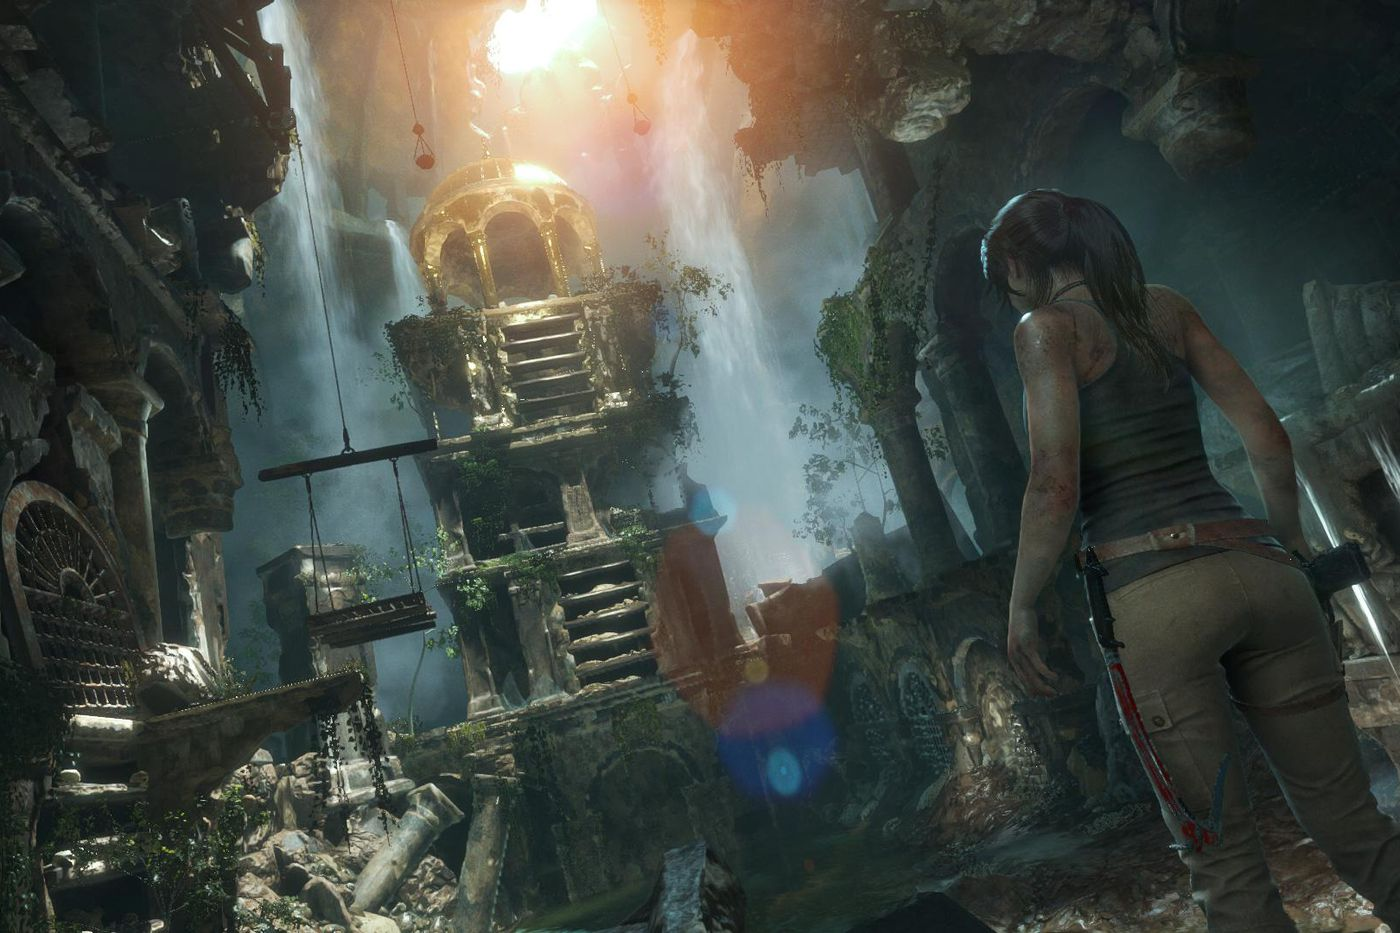 What Happened Between Tomb Raider And Rise Of The Tomb Raider